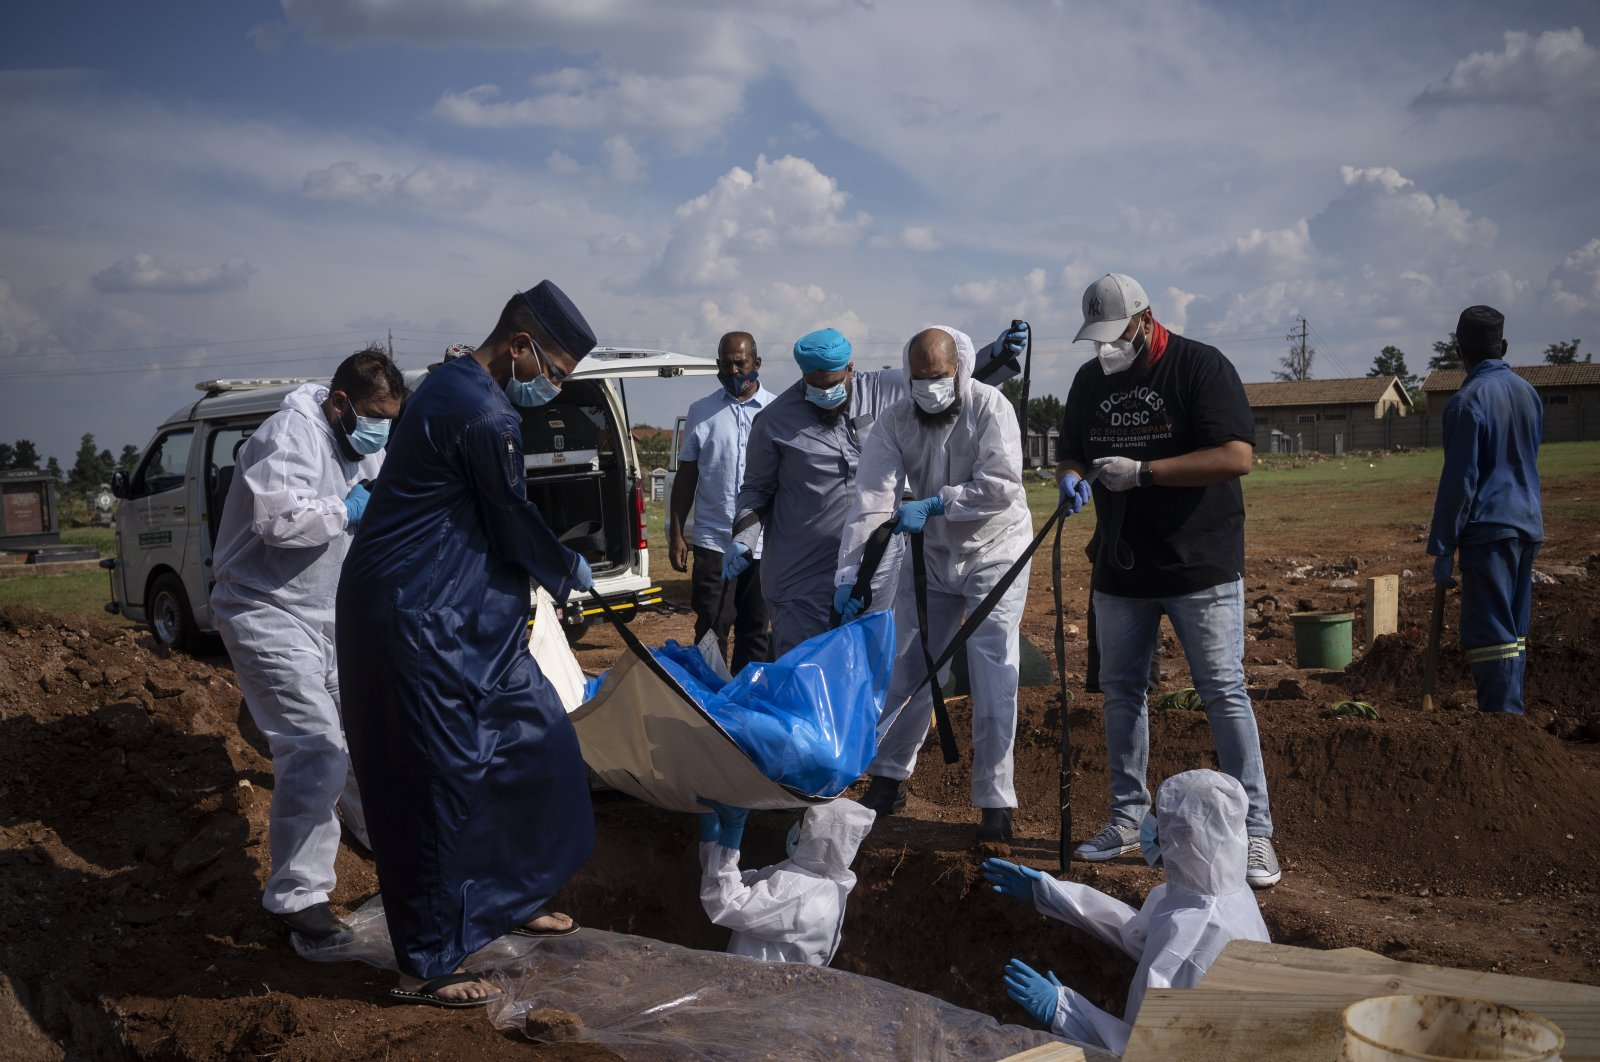 Family members and volunteers from the Saaberie Chishty Society lower the body of a COVID-19 victim into a grave at the Avalon cemetery in Lenasia, South Africa, Jan. 4, 2021. (AP Photo)